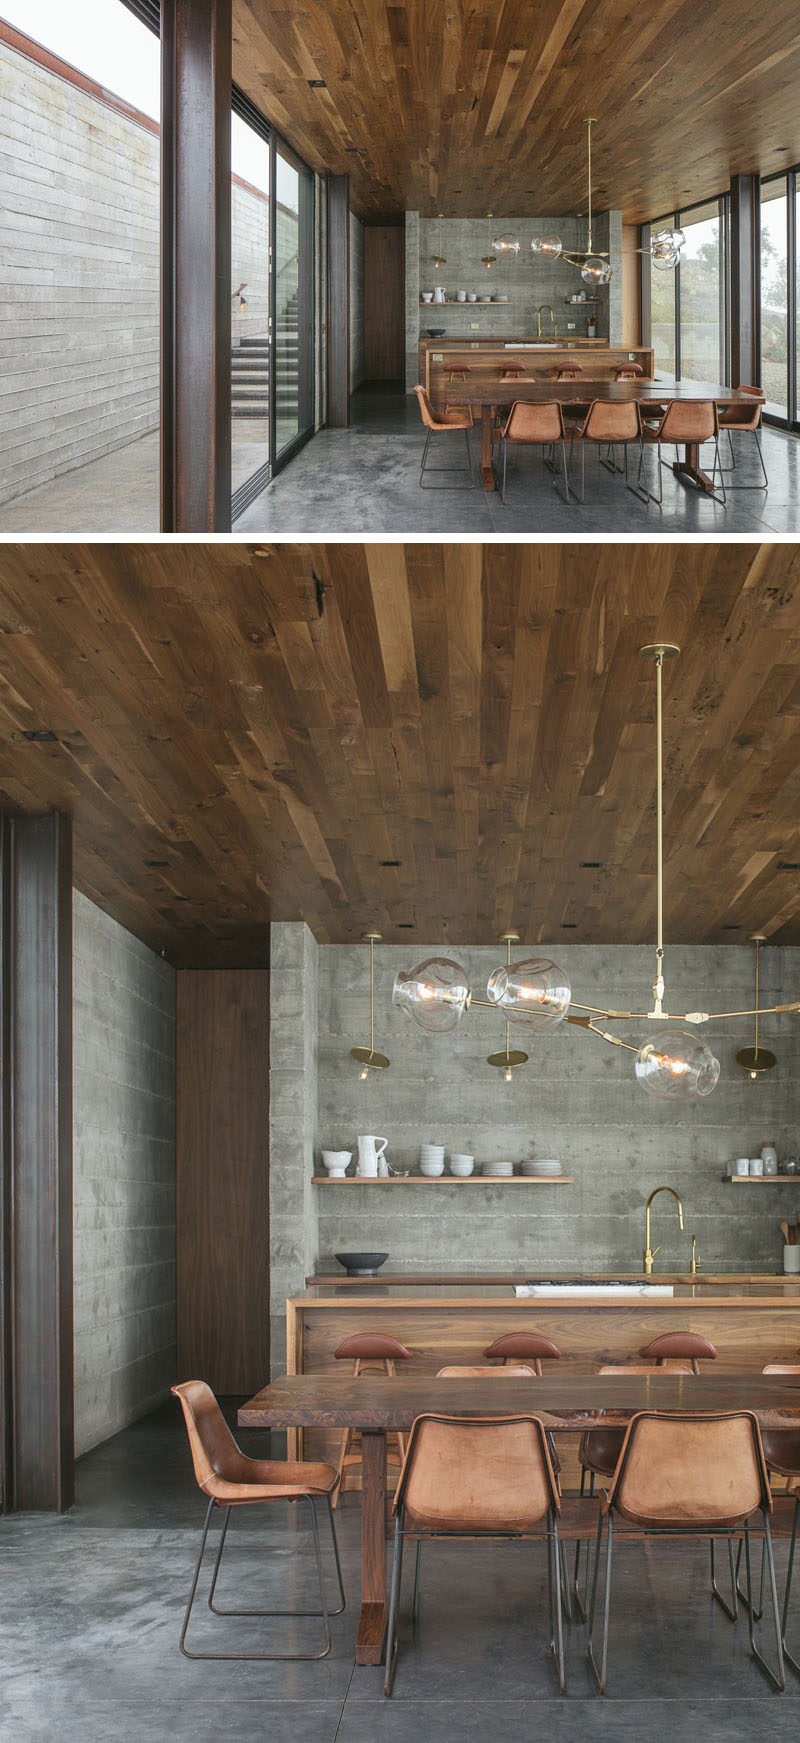 This modern guest house has a wood ceiling, concrete floors with heating, and rich walnut accents. #DiningRoom #Kitchen #Concrete #Walnut #InteriorDesign